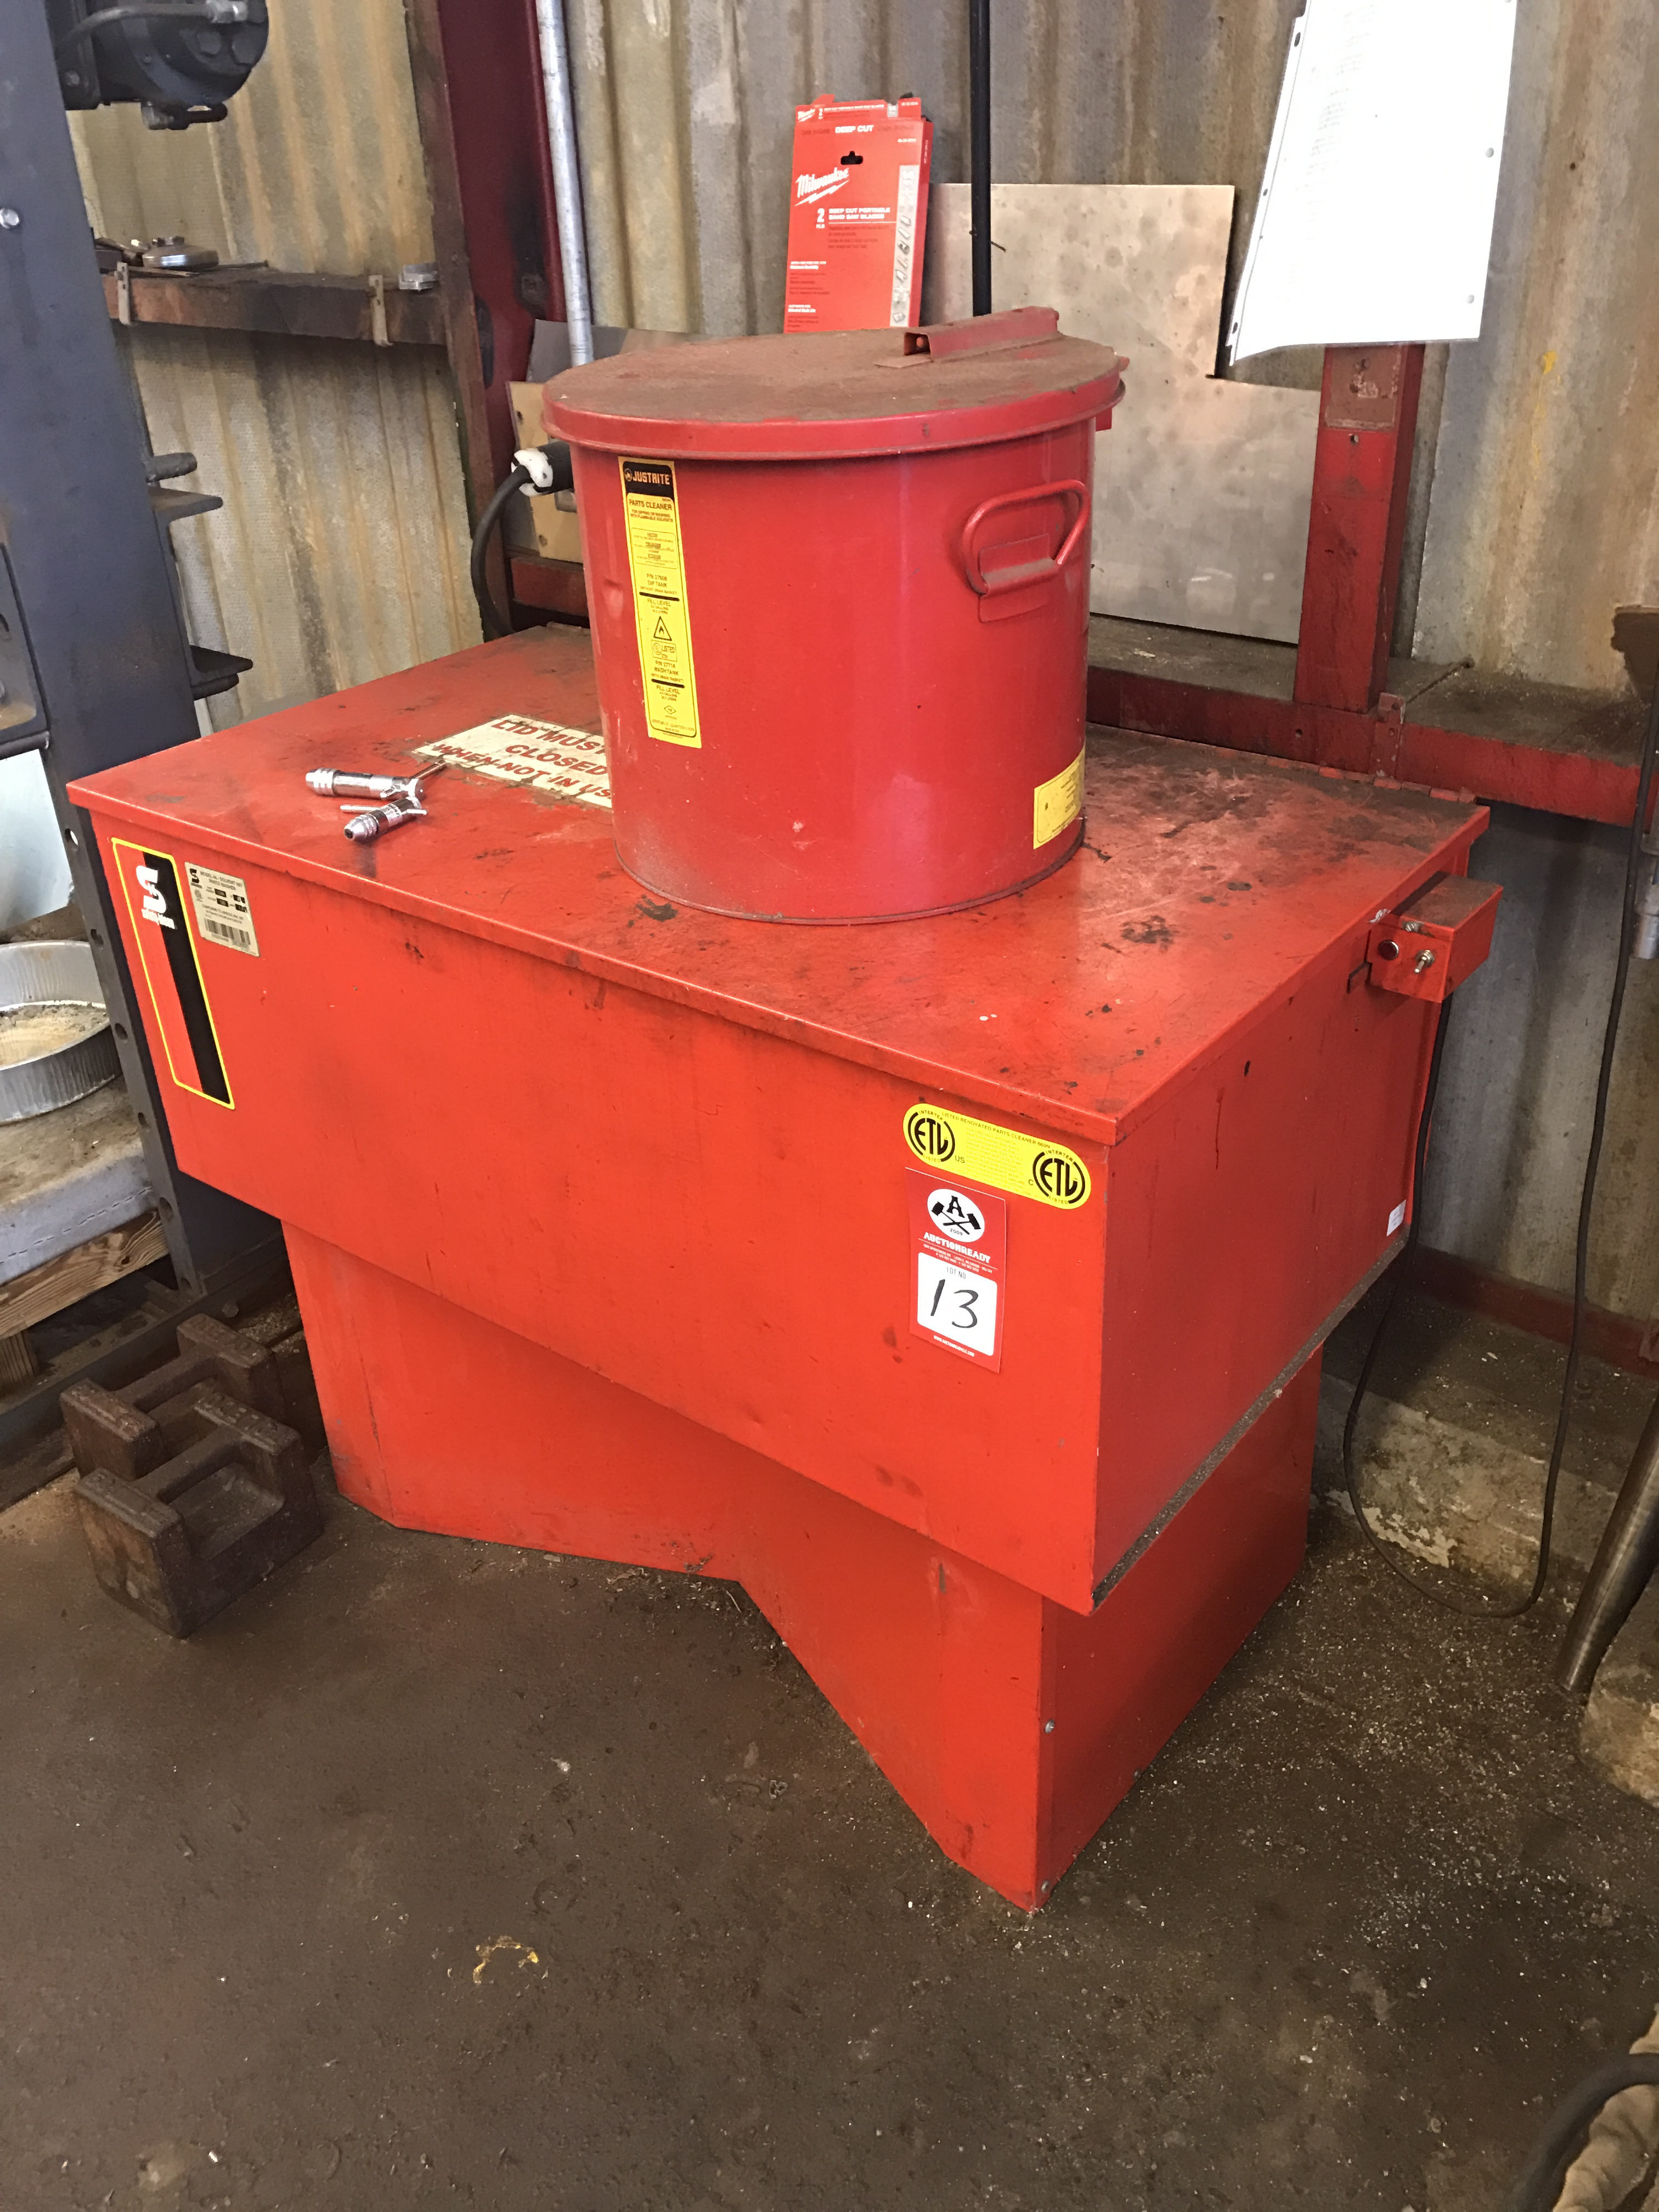 Lot 13 - Parts Washer, Safety Kleen model 44 Solvent Vat Parts Washer with JustRite 8 gallon Parts Cleaner/